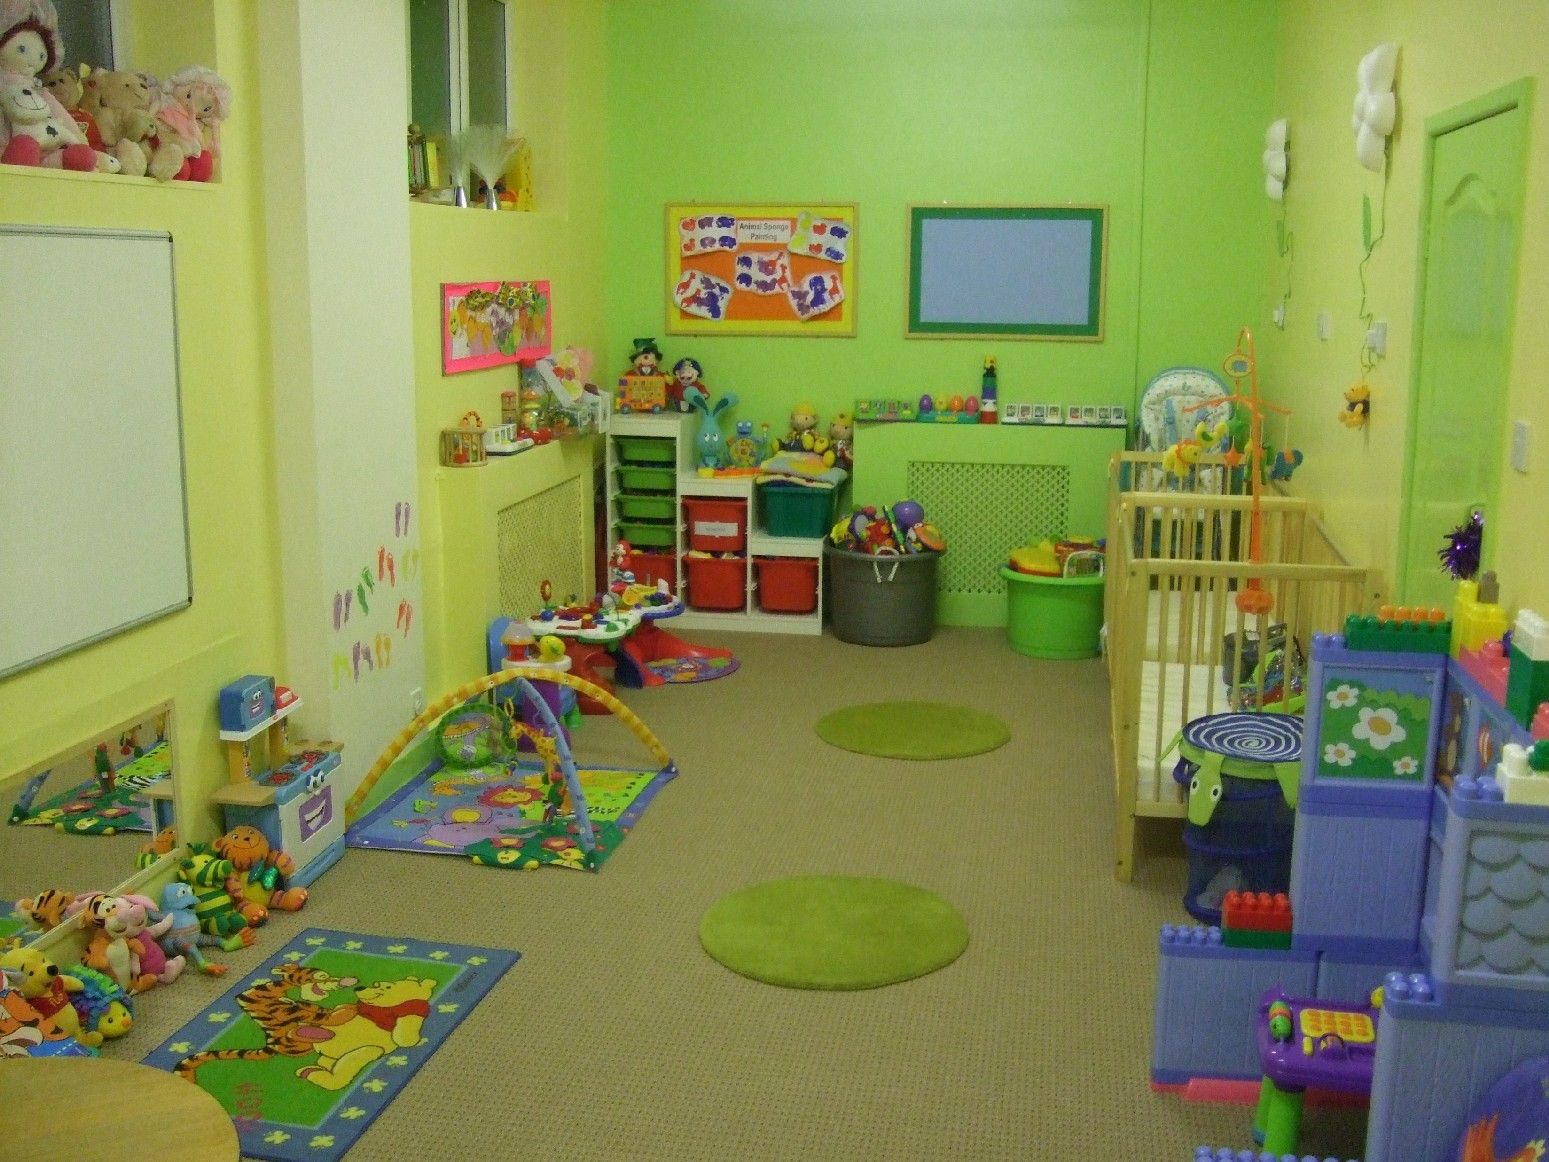 Daycare Layout Design For Infant Room Welcome To Our Baby Room This Room Can Accommodate 6 Babies Under 12 Daycare Design Baby Room Design Classroom Interior